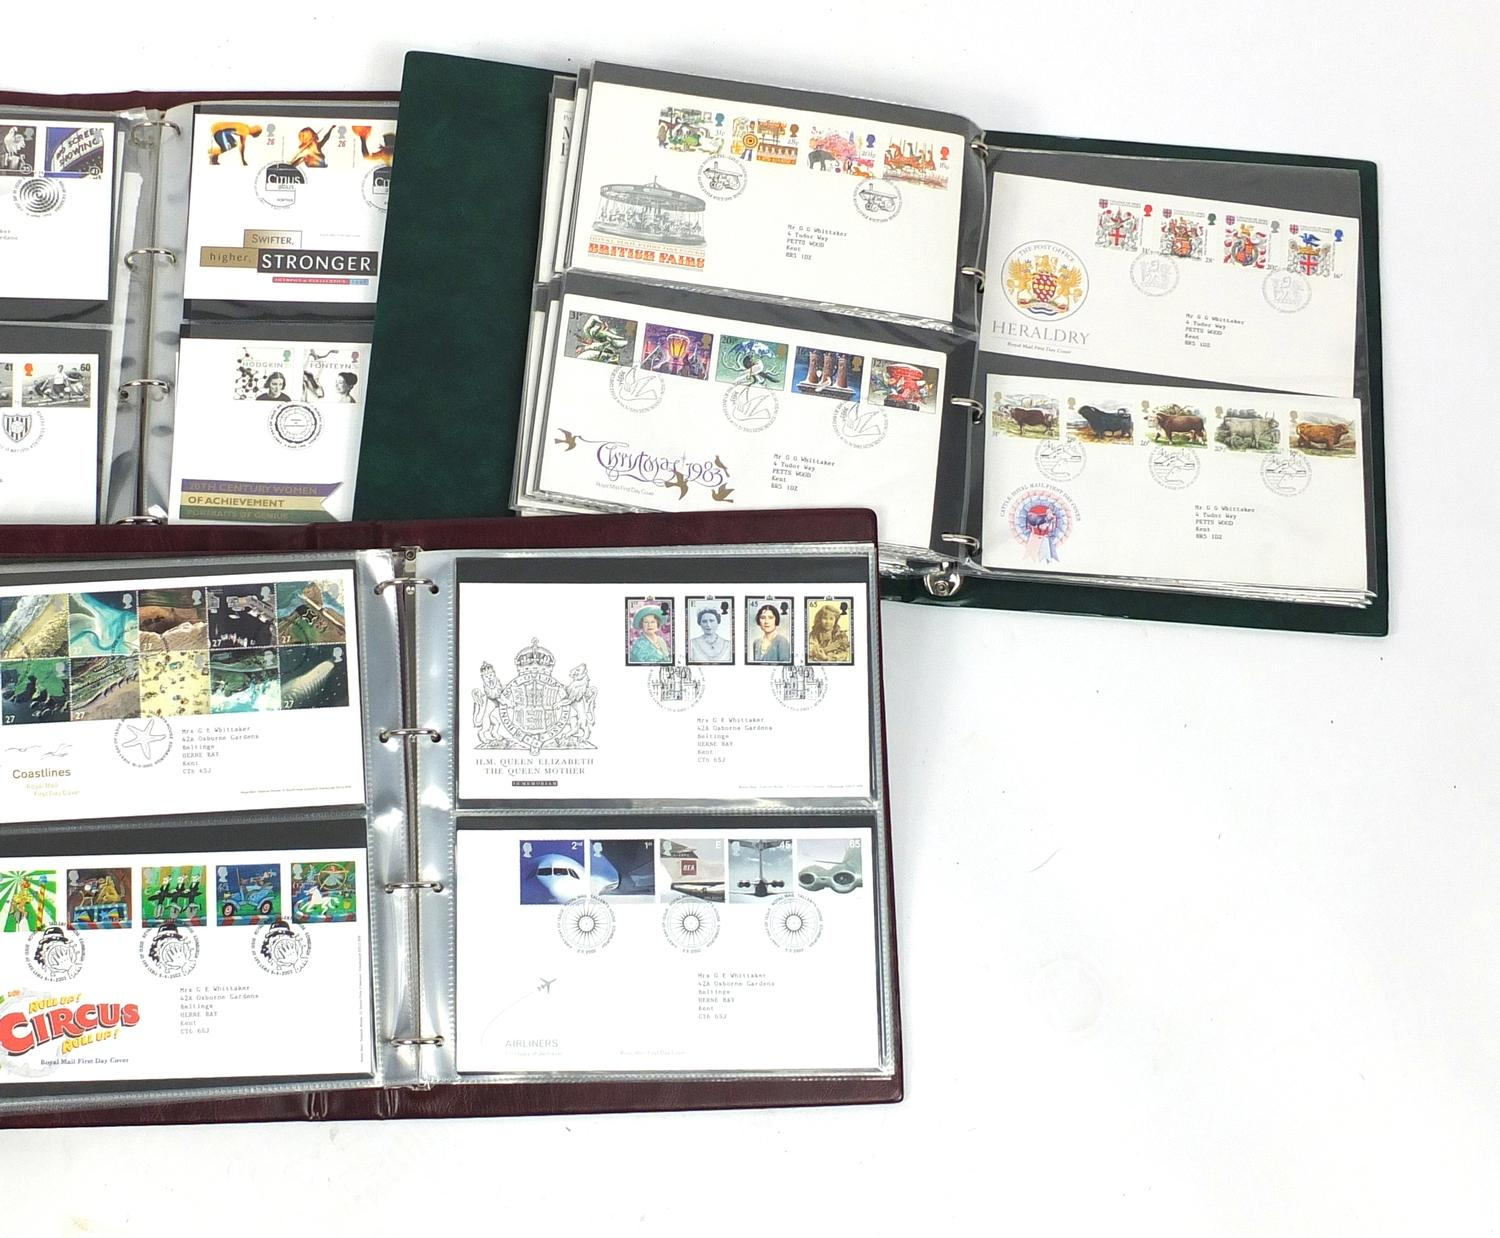 Lot 1068 - Five albums of first day covers : For Further Condition Reports Please visit our website - We update